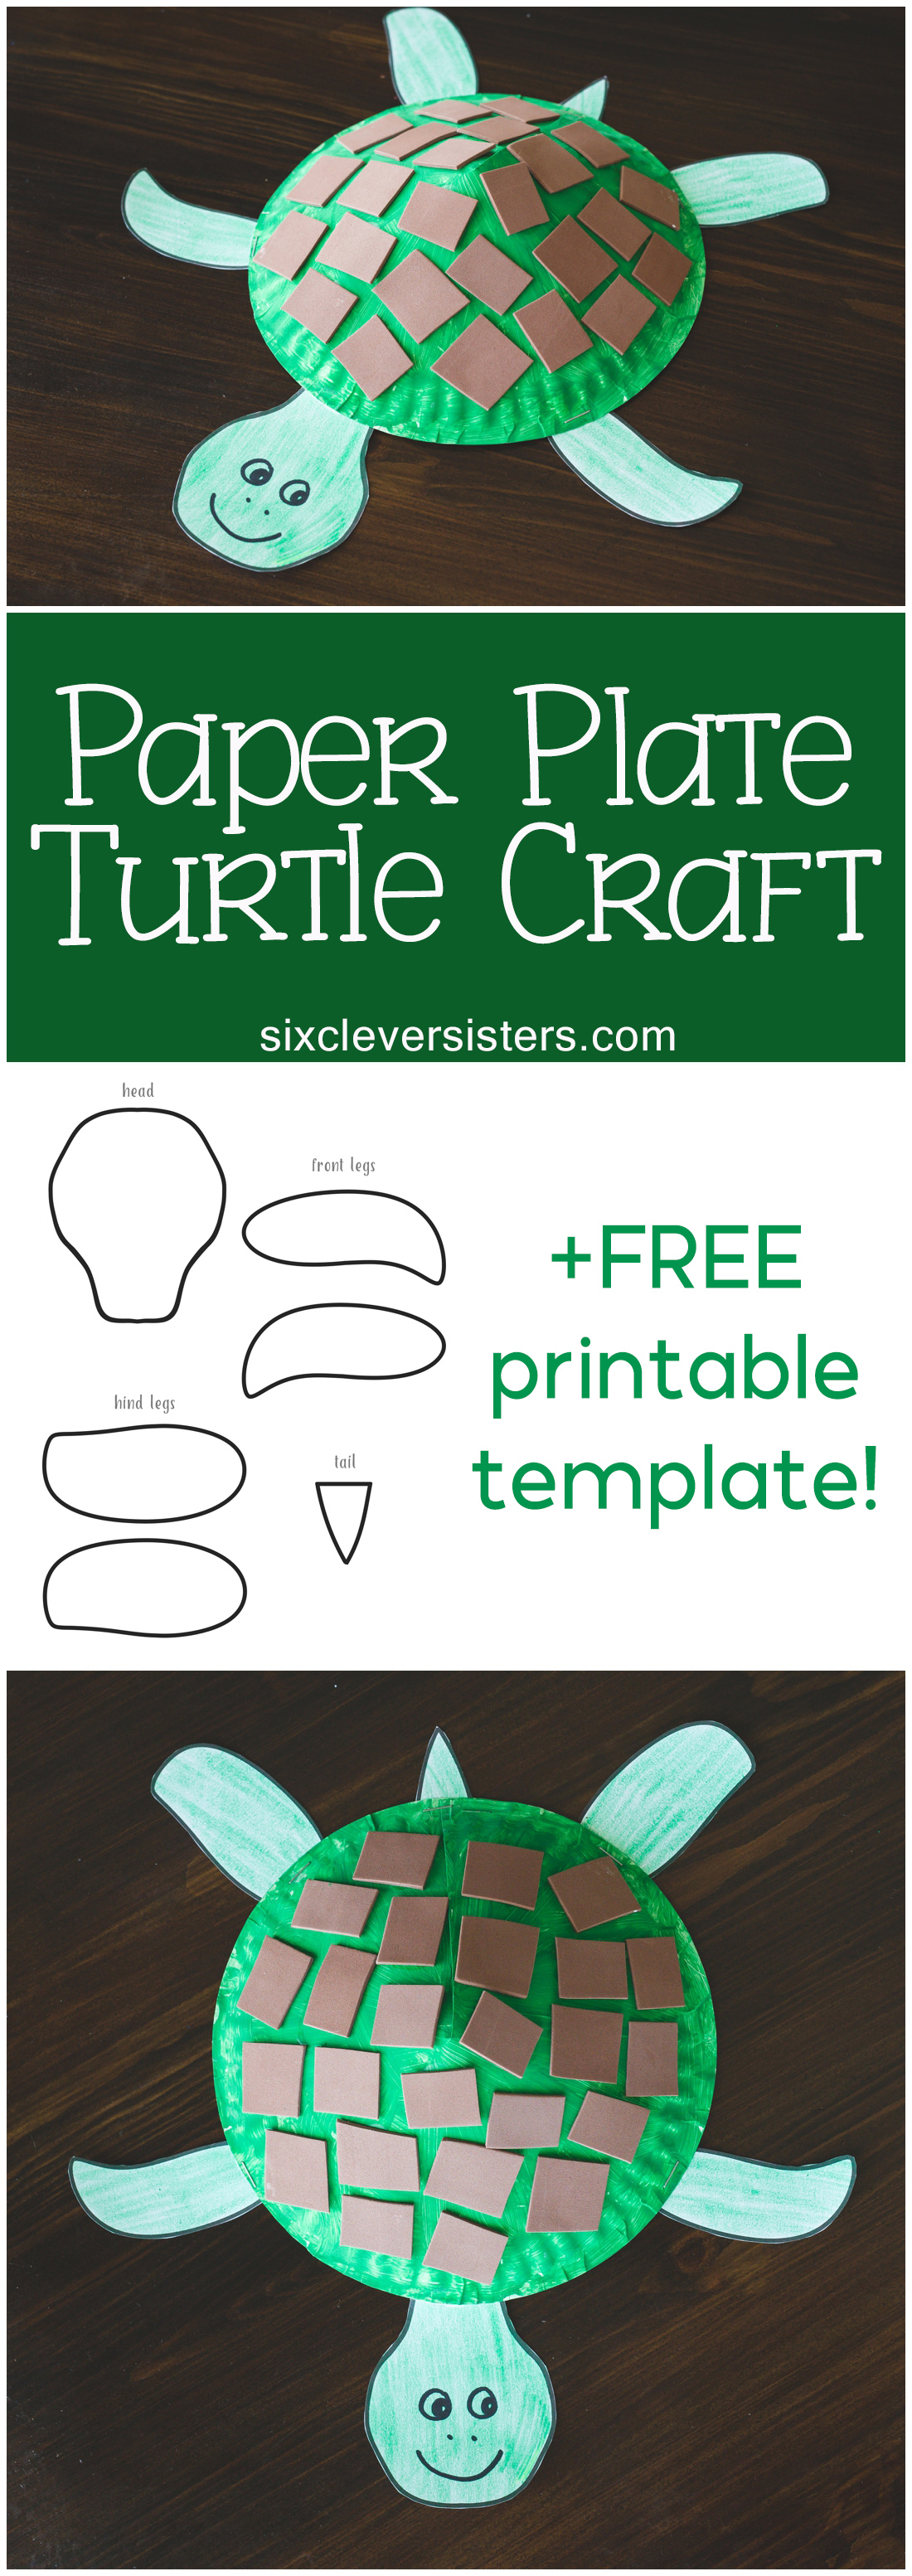 ART AND CRAFT FOR KIDS: HOW TO MAKE TOY TORTOISE OUT OF DISPOSABLE ... | 3107x1100